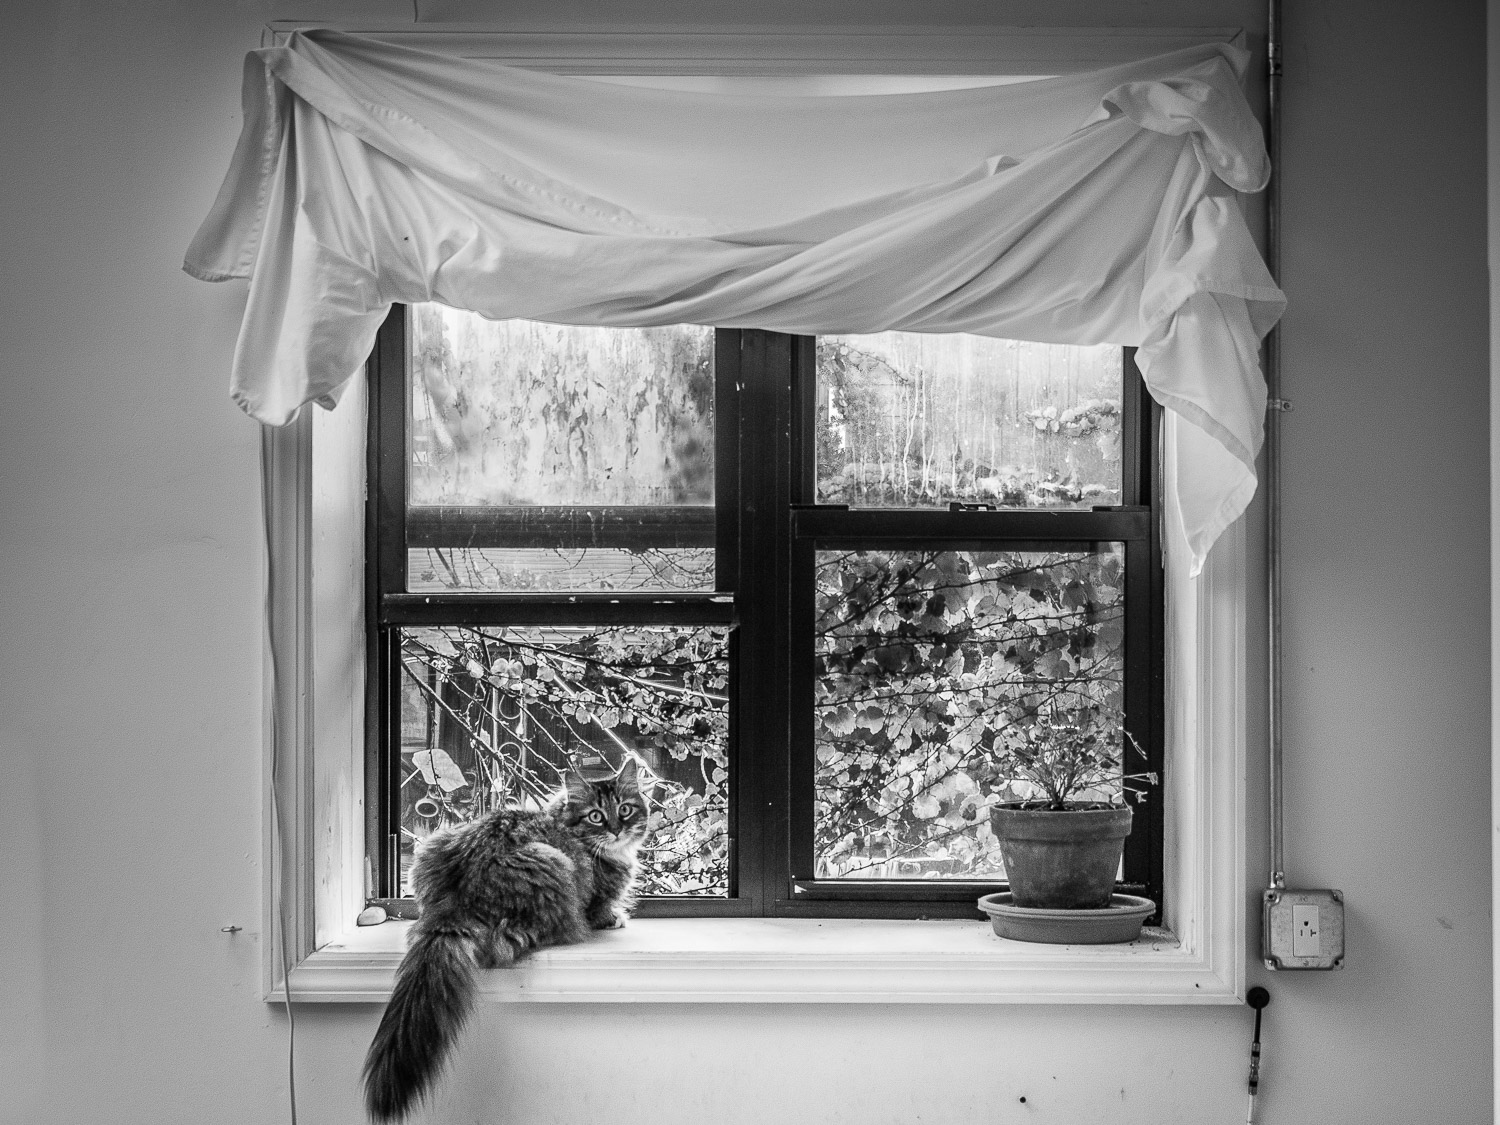 View of Live/Work Artist Studio in Greenpoint Brooklyn NYC with cat perched in window Neesh NYC